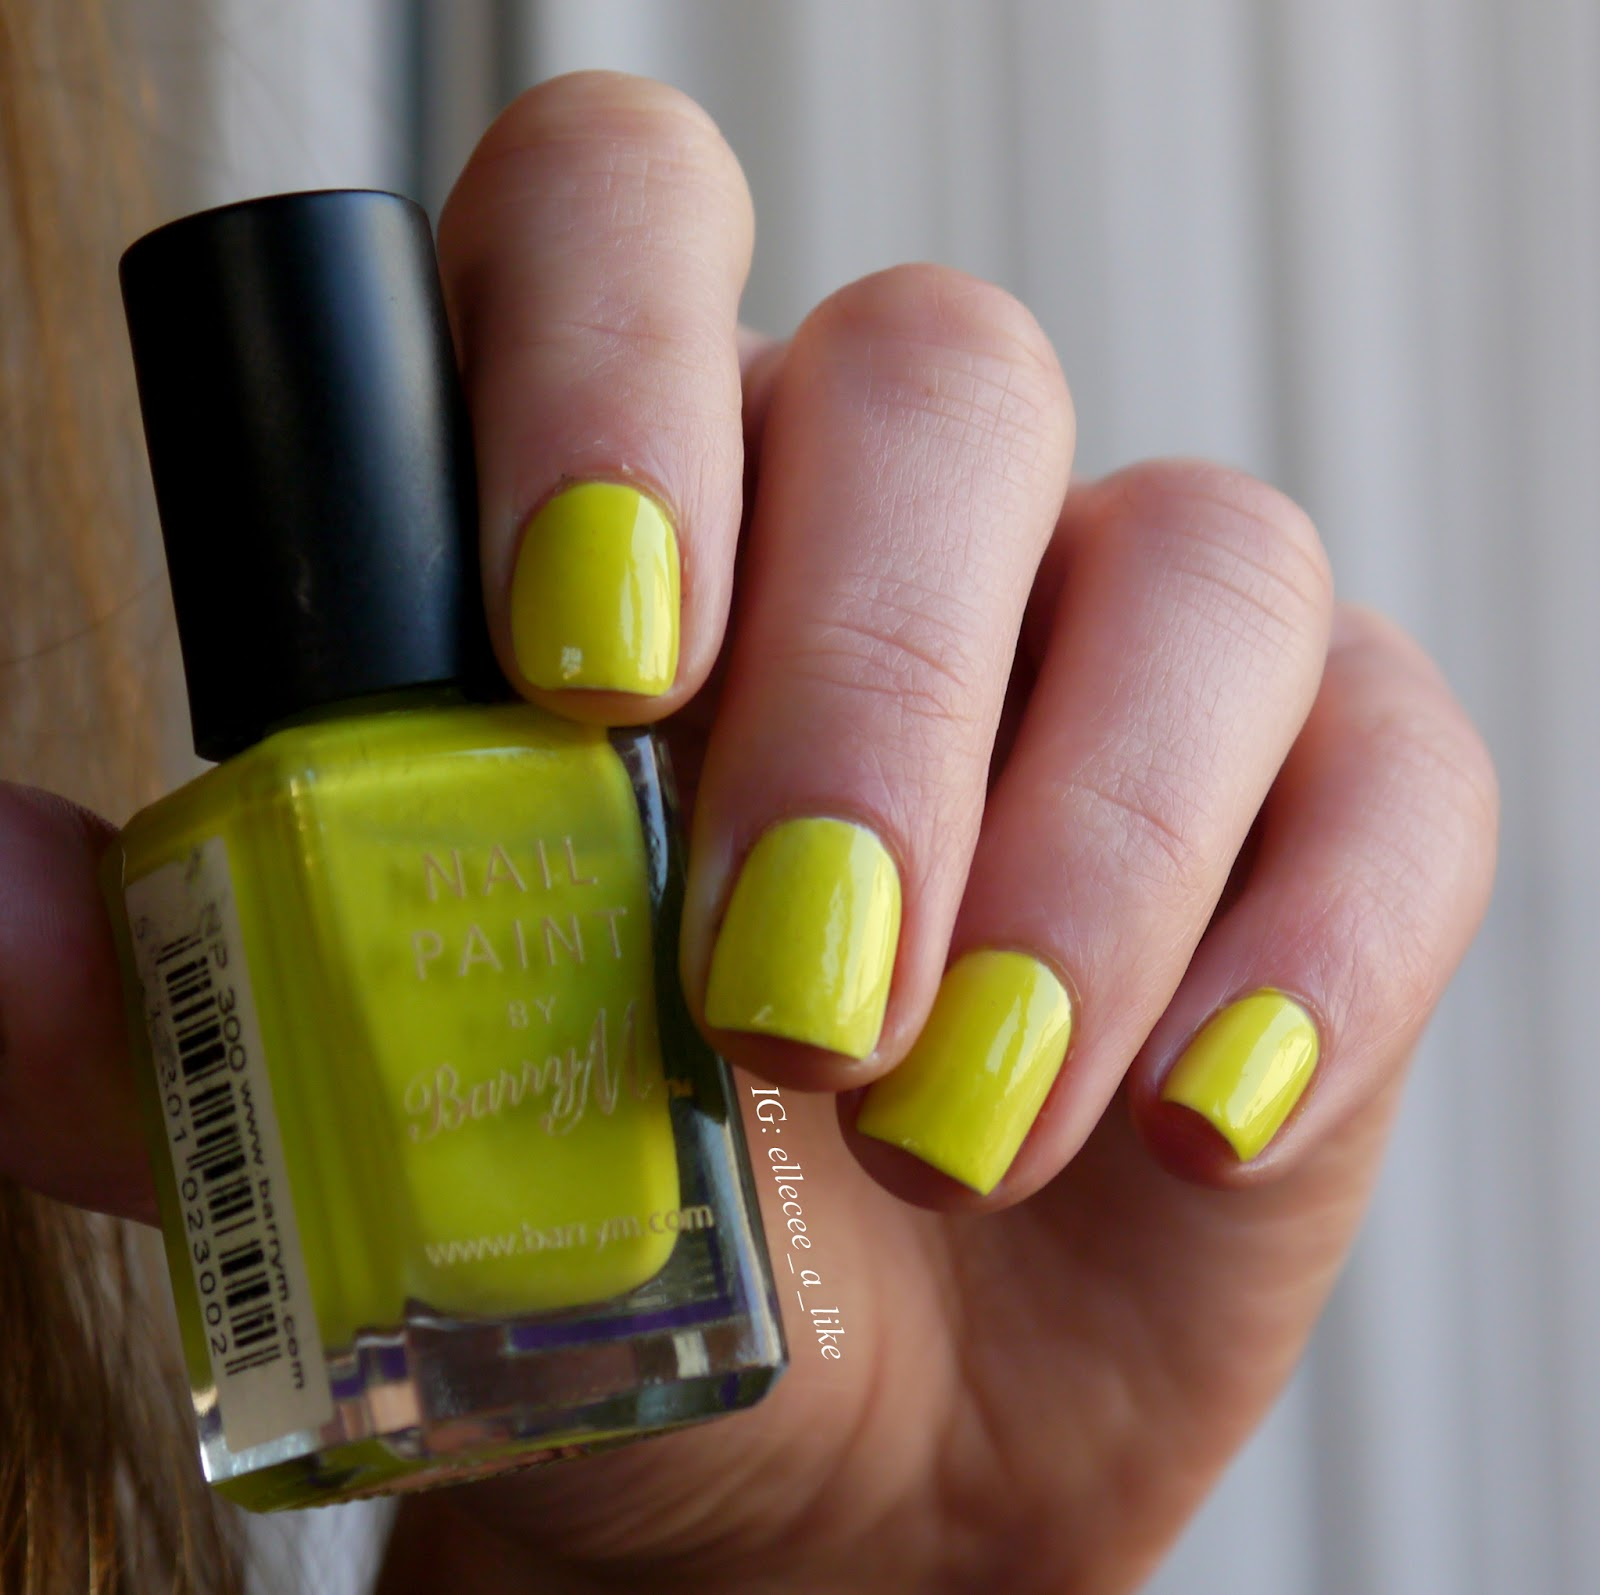 http://lack-a-like.blogspot.de/2015/04/acid-yellow-lacke-in-farbe-und-bunt.html